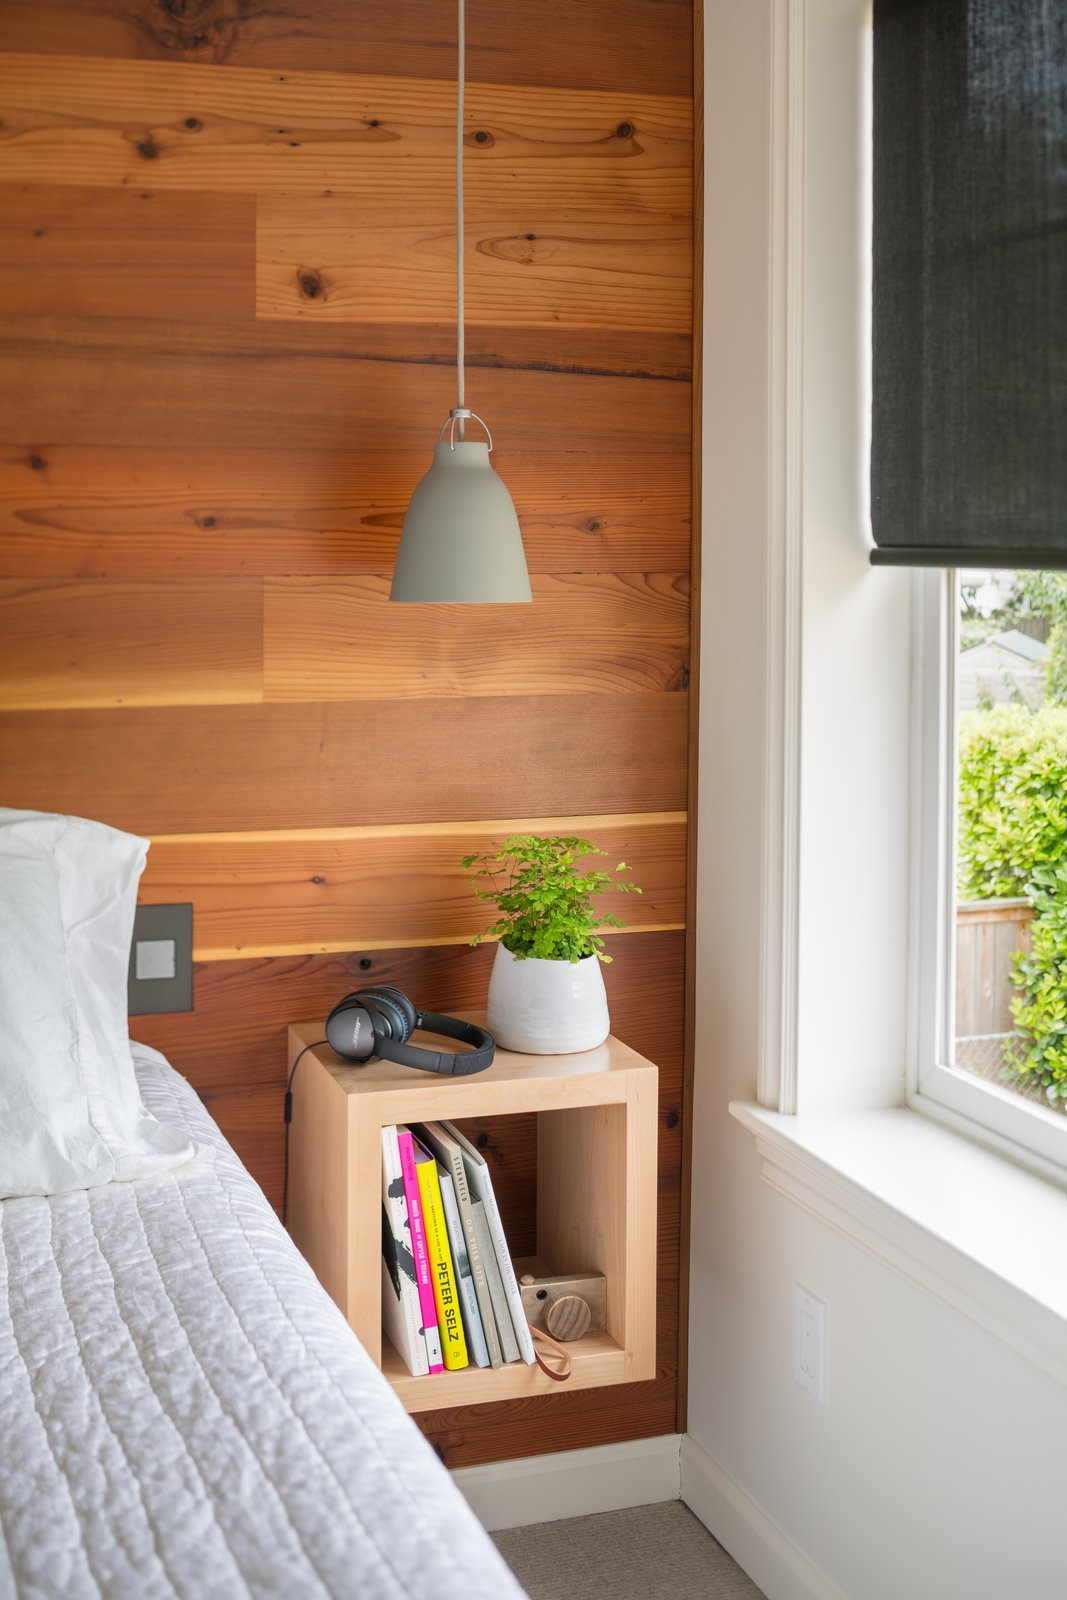 Floating nightstand keeps things organized and discreet Tagged: Wood Counter, Drop In Sink, Bedroom, Shelves, Bed, Toddler Age, Neutral Gender, Boy Gender, Night Stands, Ceiling Lighting, and Bedroom.  Hurst Avenue by Guggenheim Architecture + Design Studio